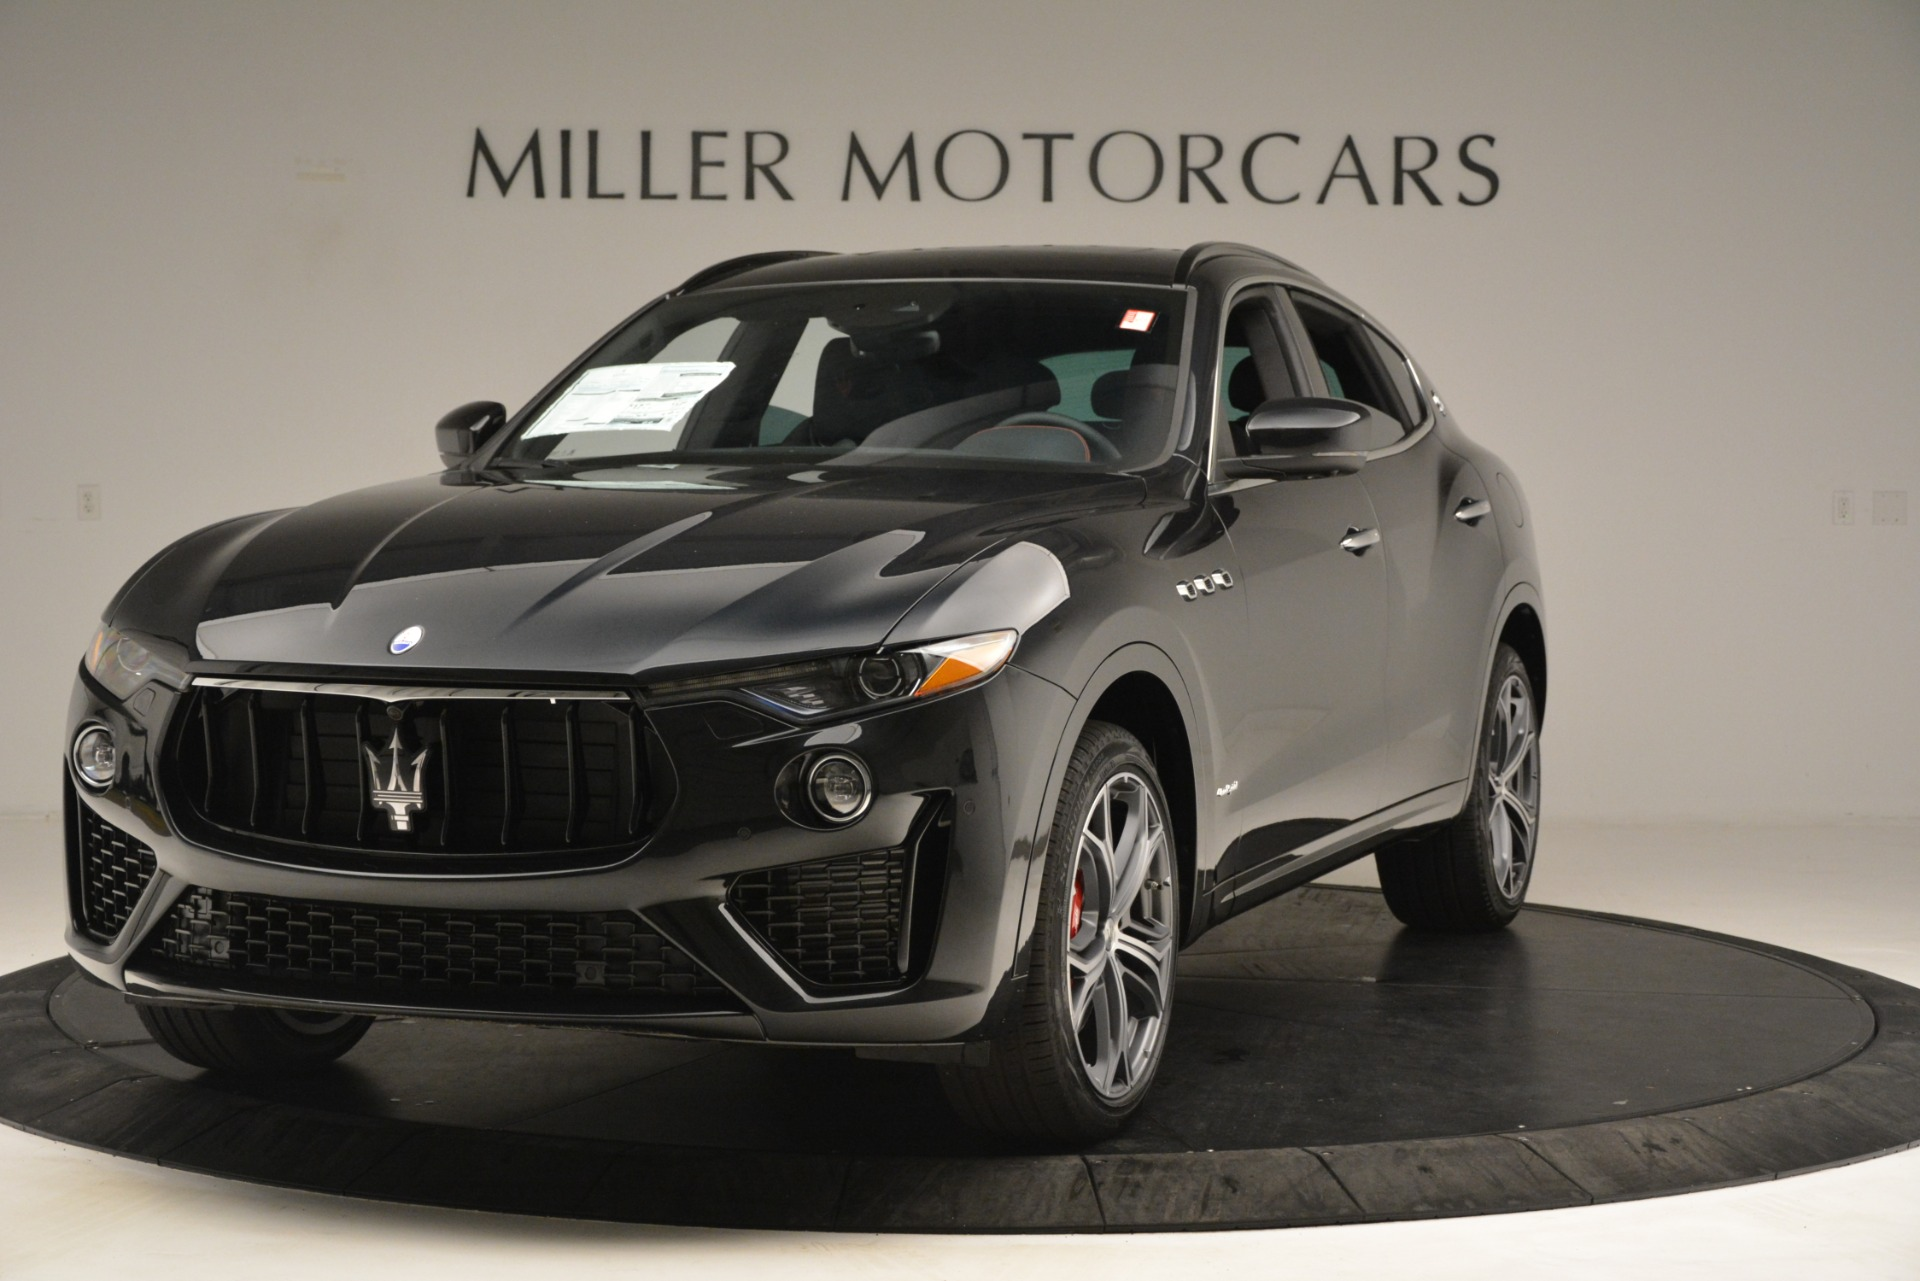 New 2019 Maserati Levante S Q4 GranSport for sale Sold at Maserati of Westport in Westport CT 06880 1